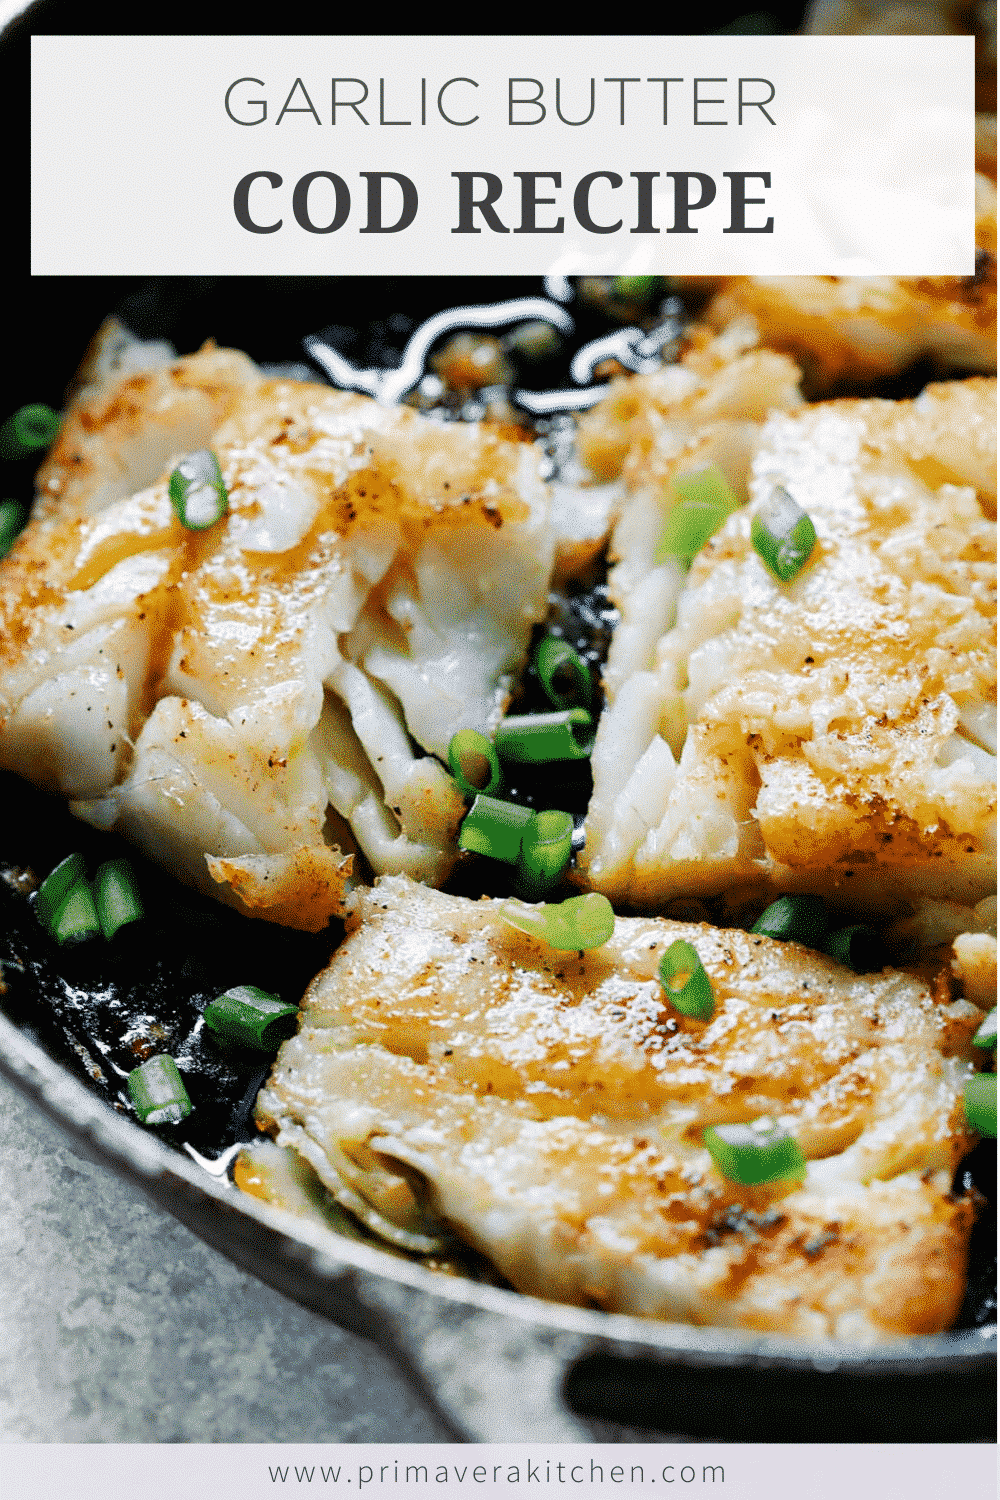 close up of white fish fillets garnished with scallions cooking in cast iron skillet